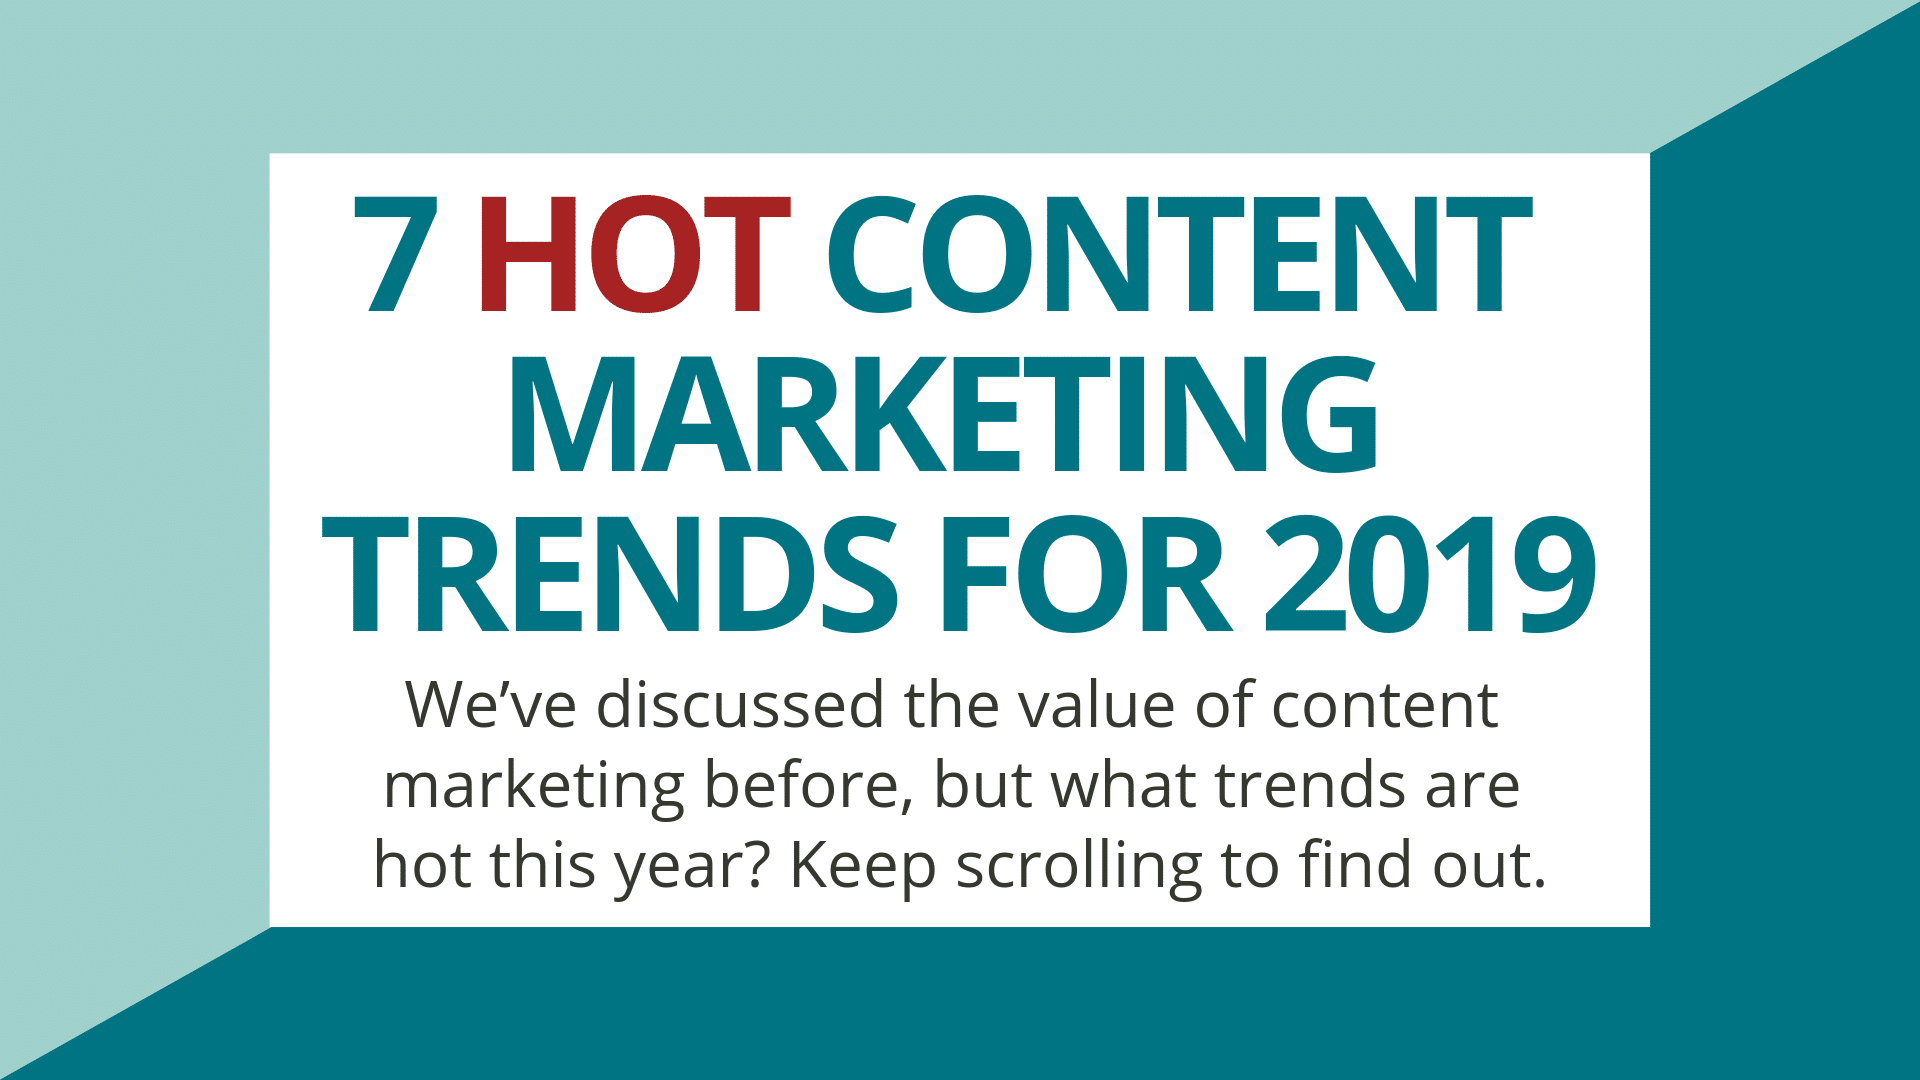 Infographic: 7 Hot Content Marketing Trends for 2019